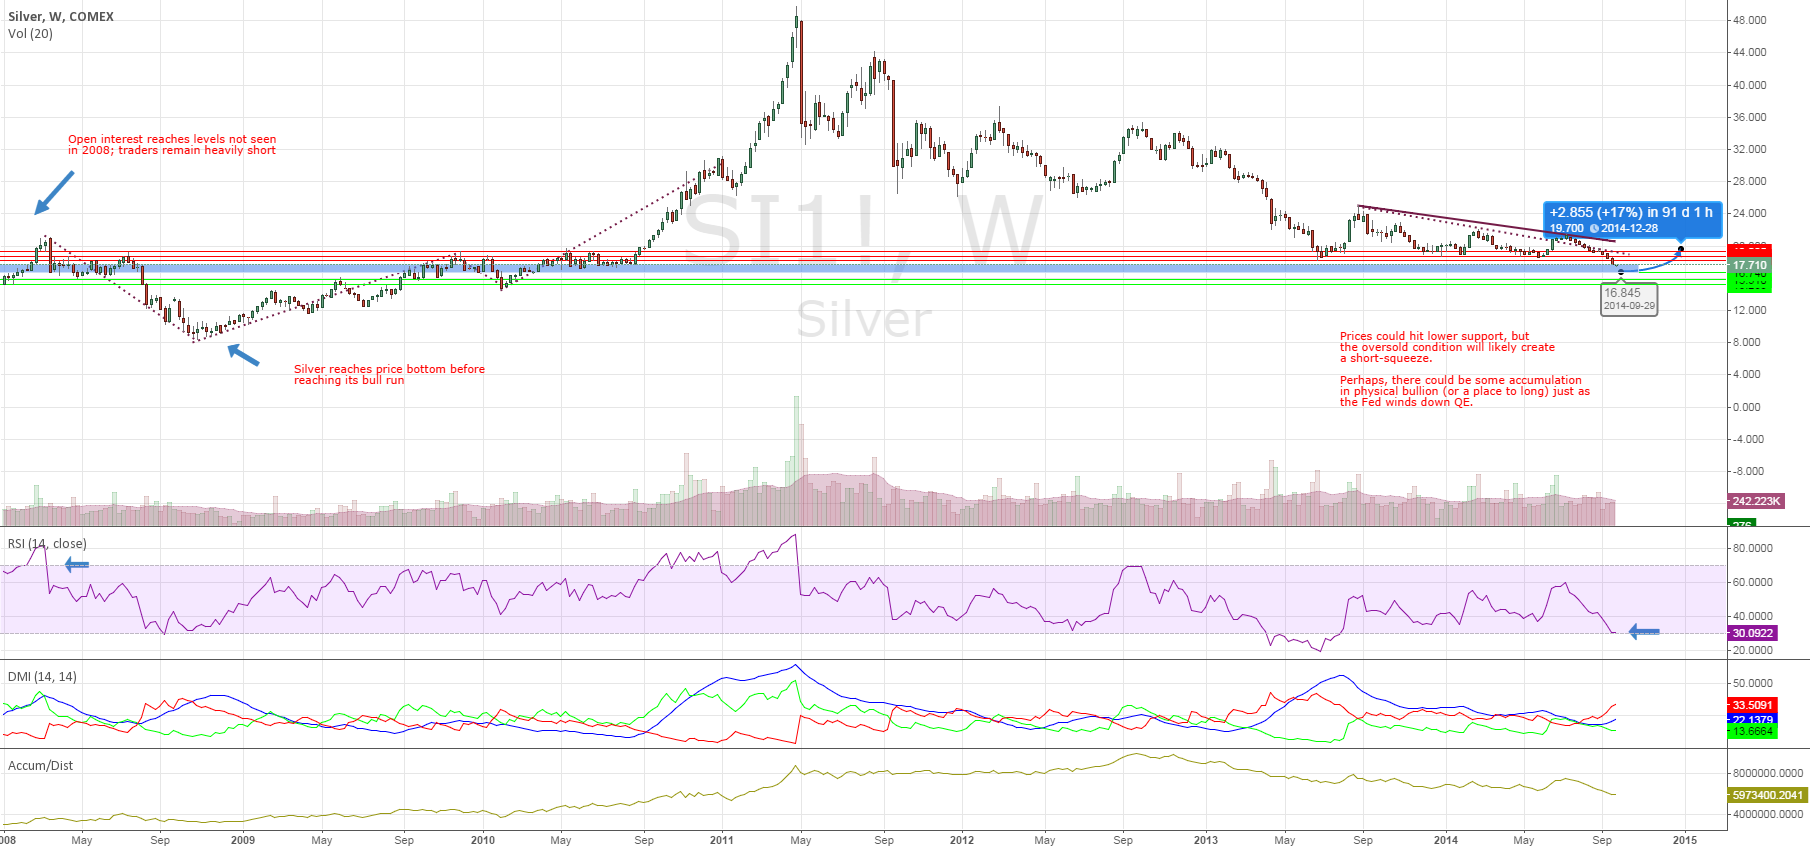 Silver Open Interest Reach 2008-Levels, Speculators Remain Short